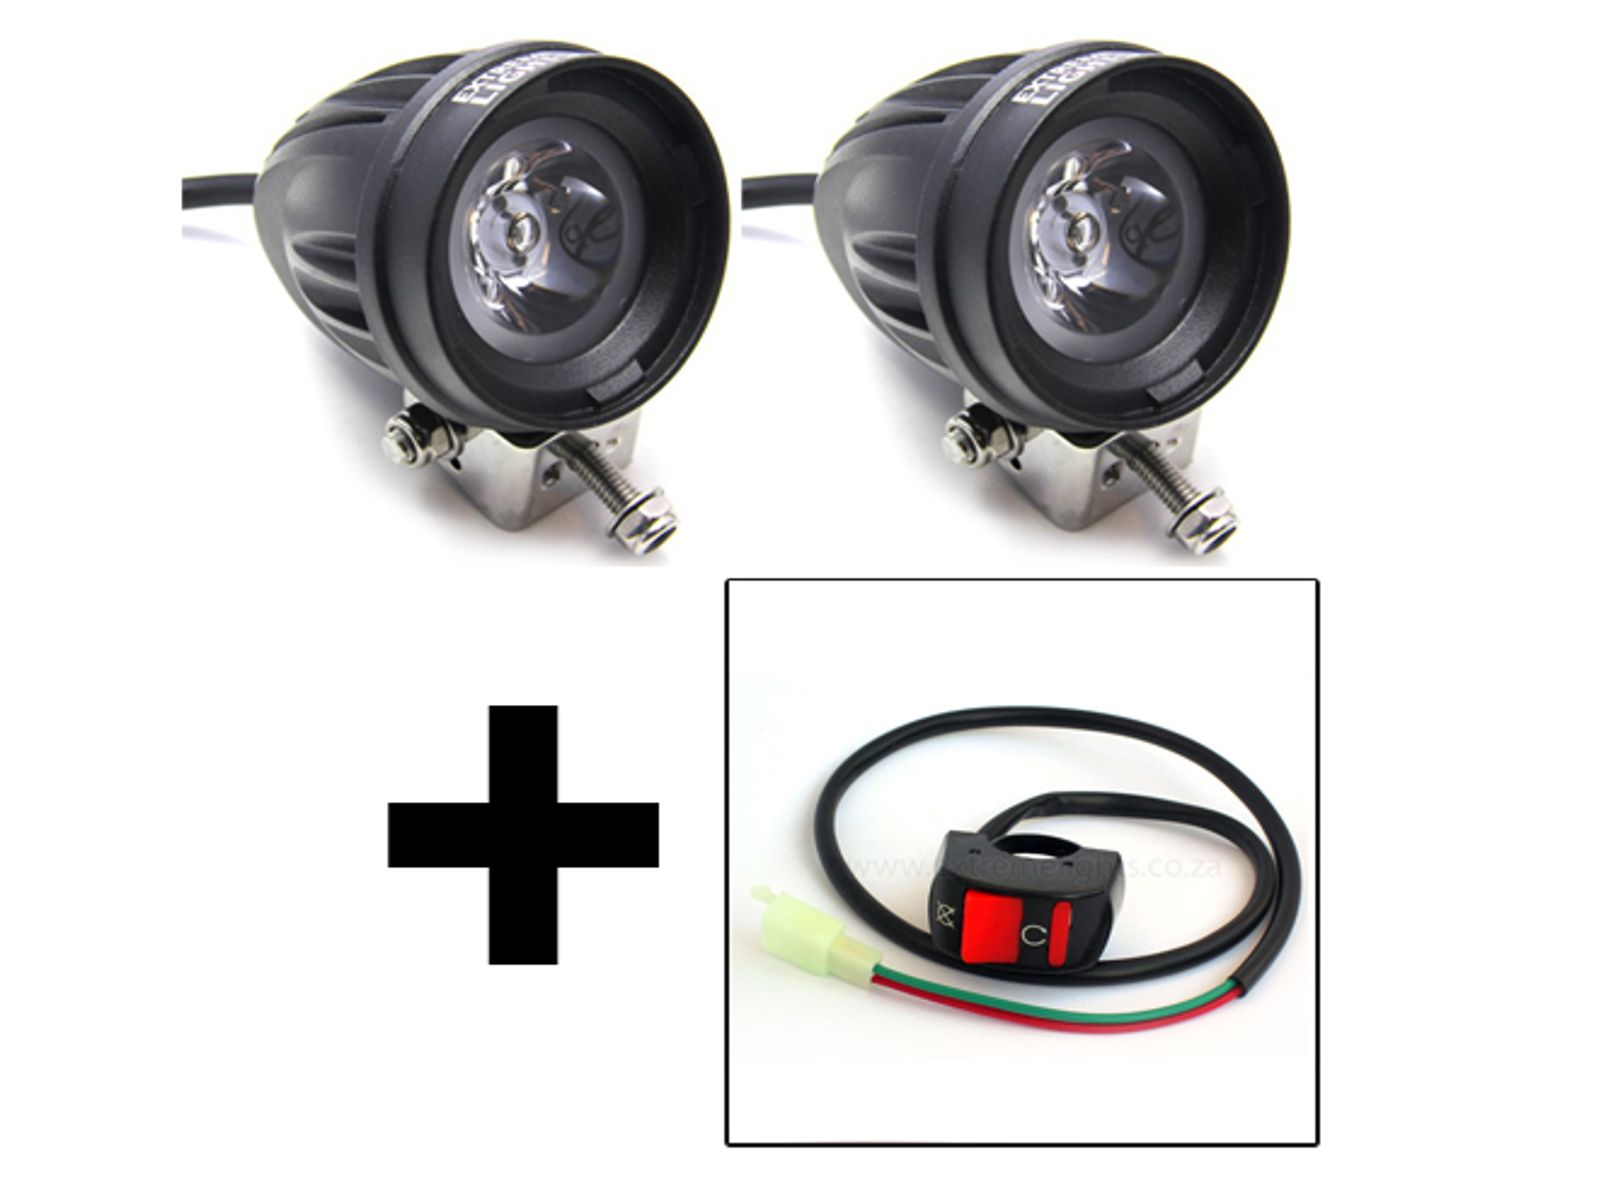 Led Motorcycle Spot Light Set 10w Switch Combo 12 Month